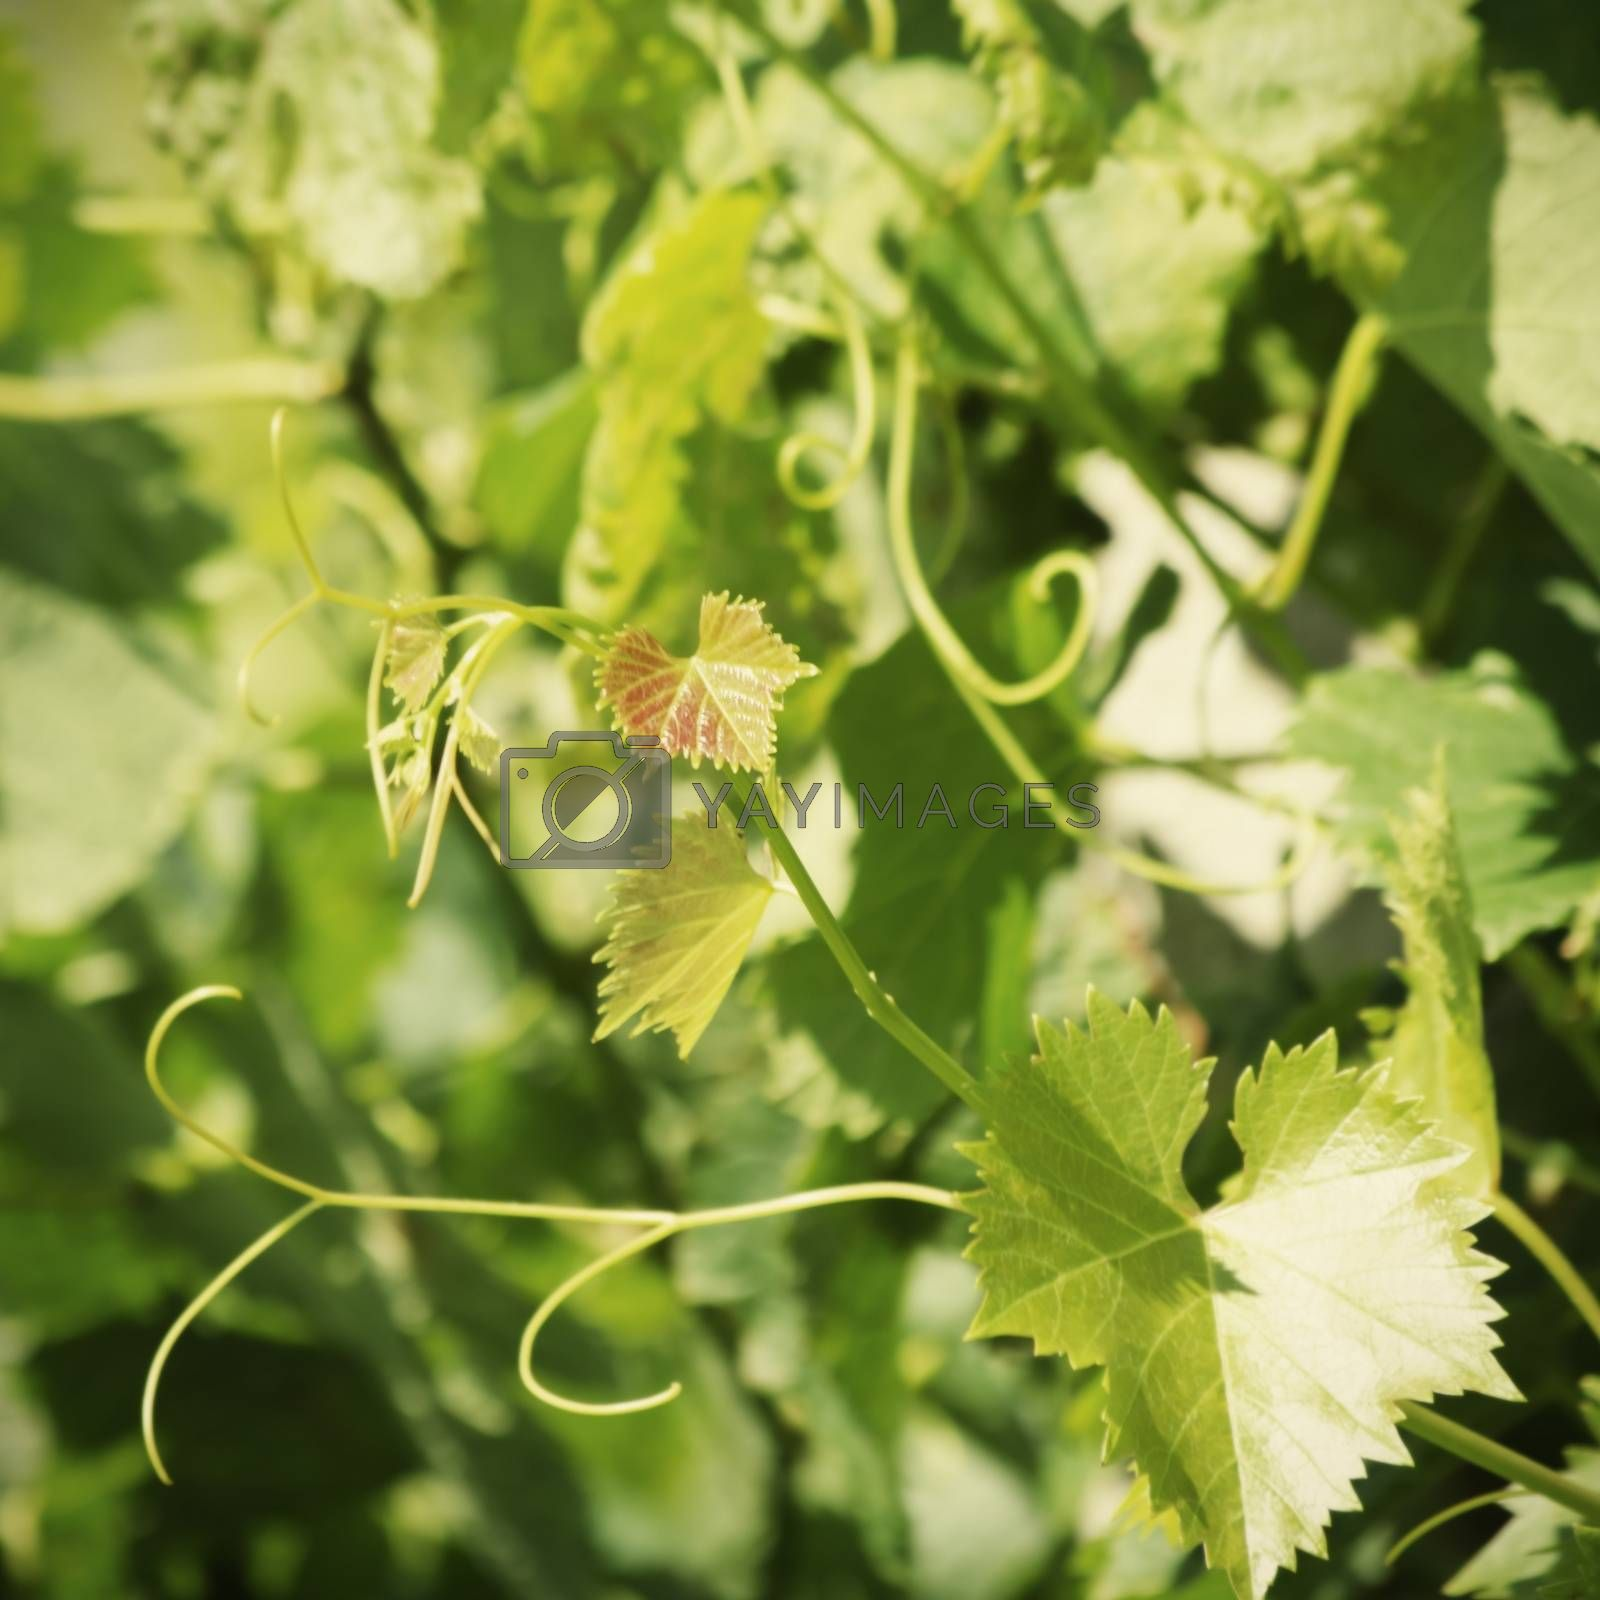 Young Green Grape Leaves in Summertime